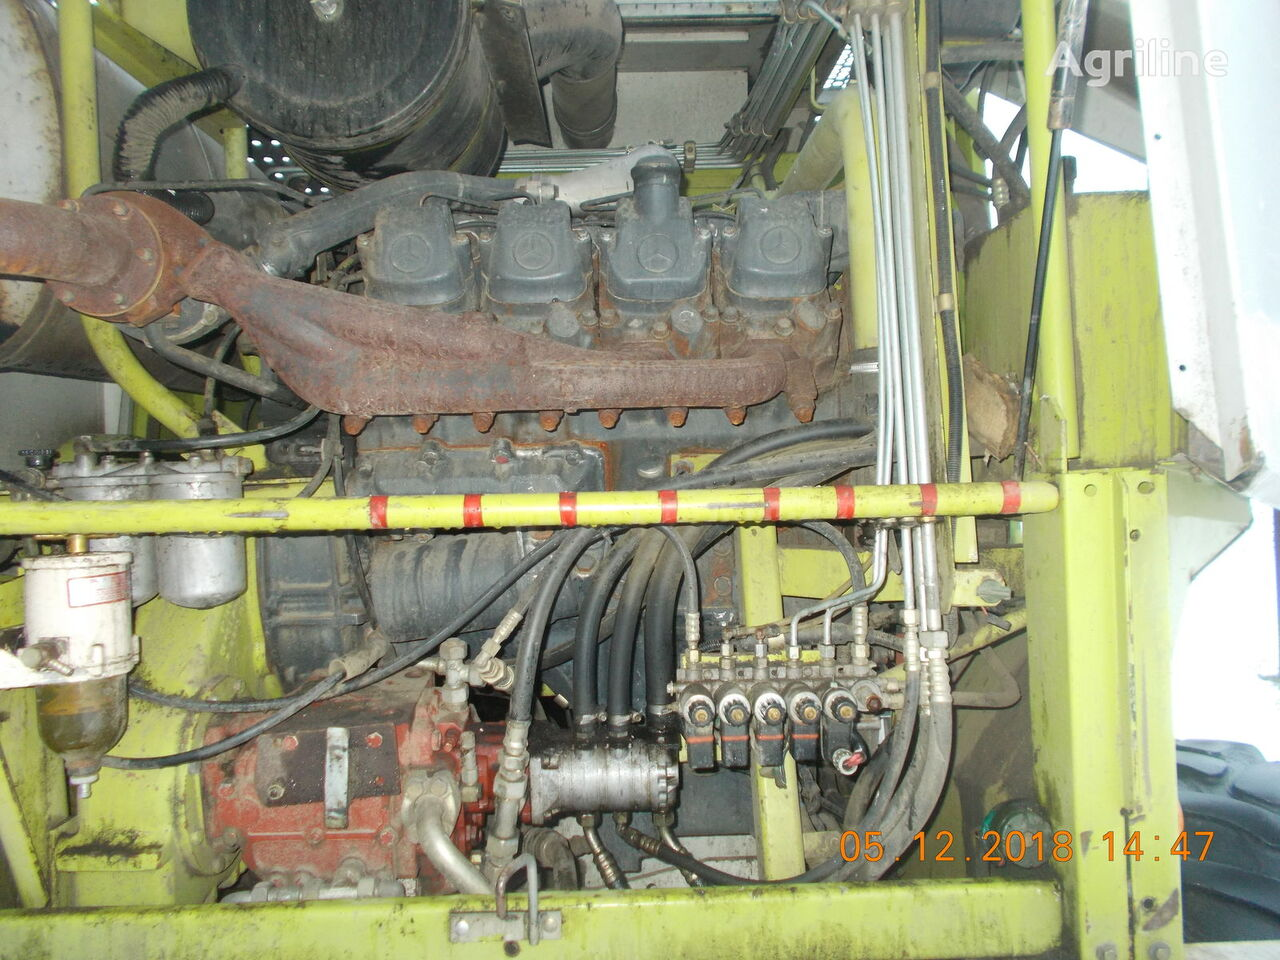 MERCEDES-BENZ OM 402 LA engine for CLAAS Jaguar 840 grain harvester